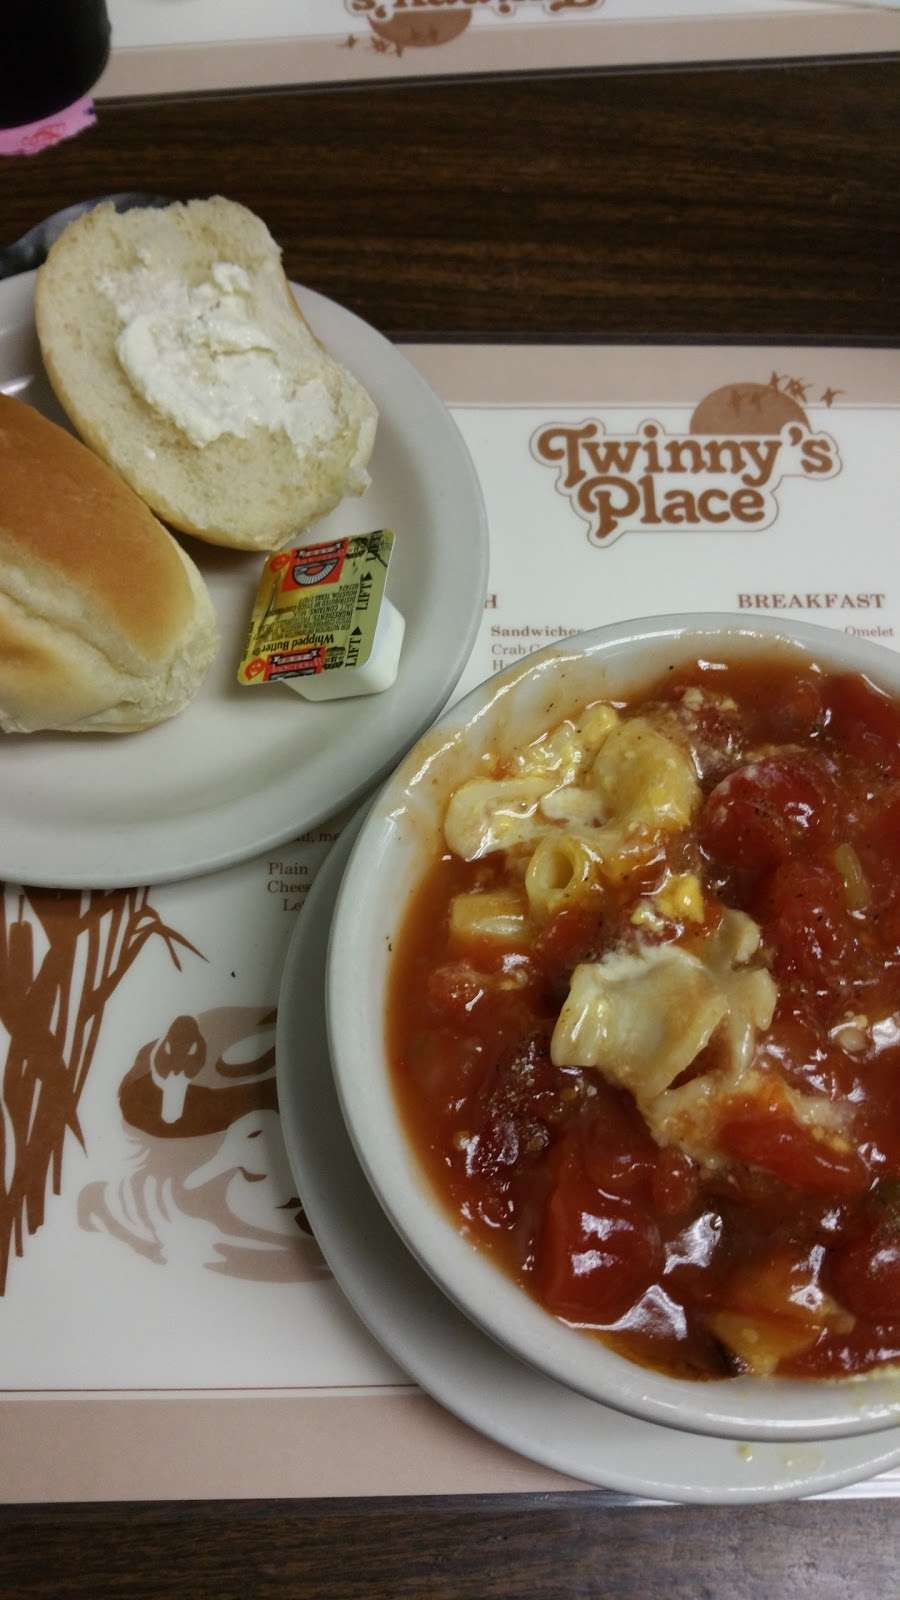 Twinnys Place - meal takeaway  | Photo 8 of 10 | Address: 162 N Main St, Galena, MD 21635, USA | Phone: (410) 648-5784